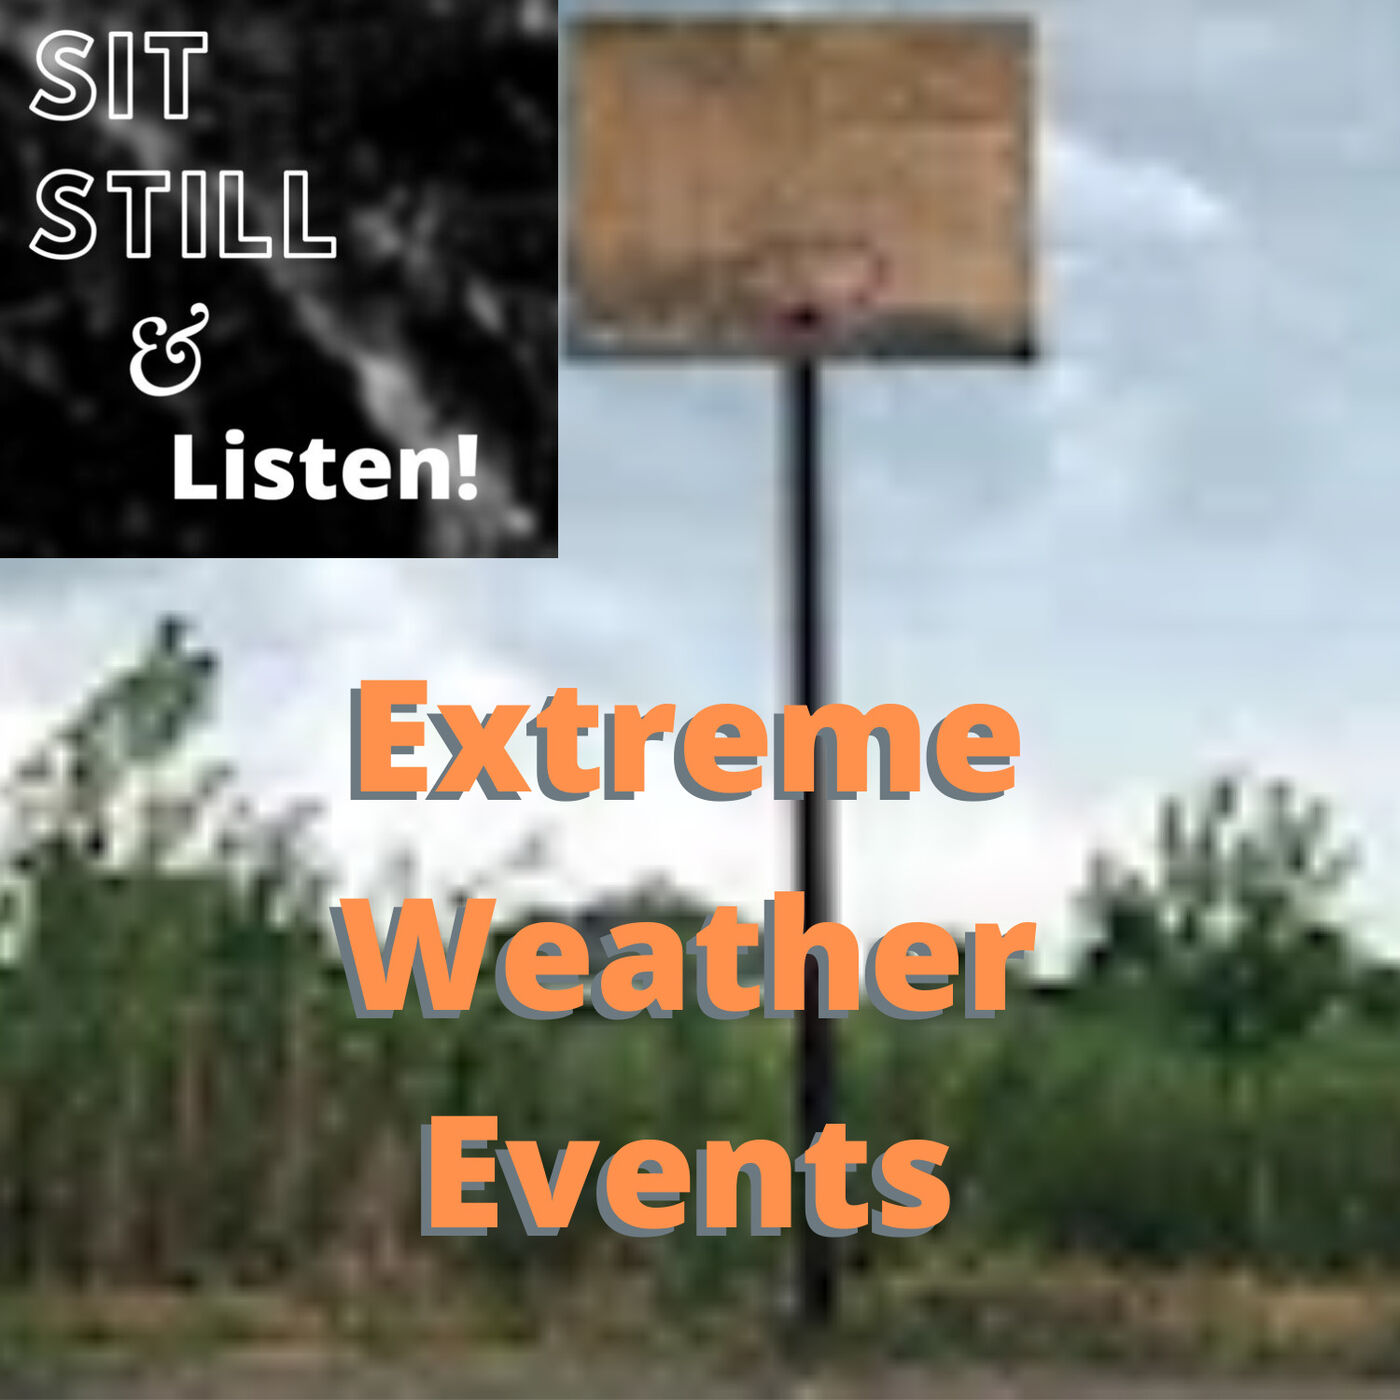 Sit Still and Listen - Extreme Weather Events